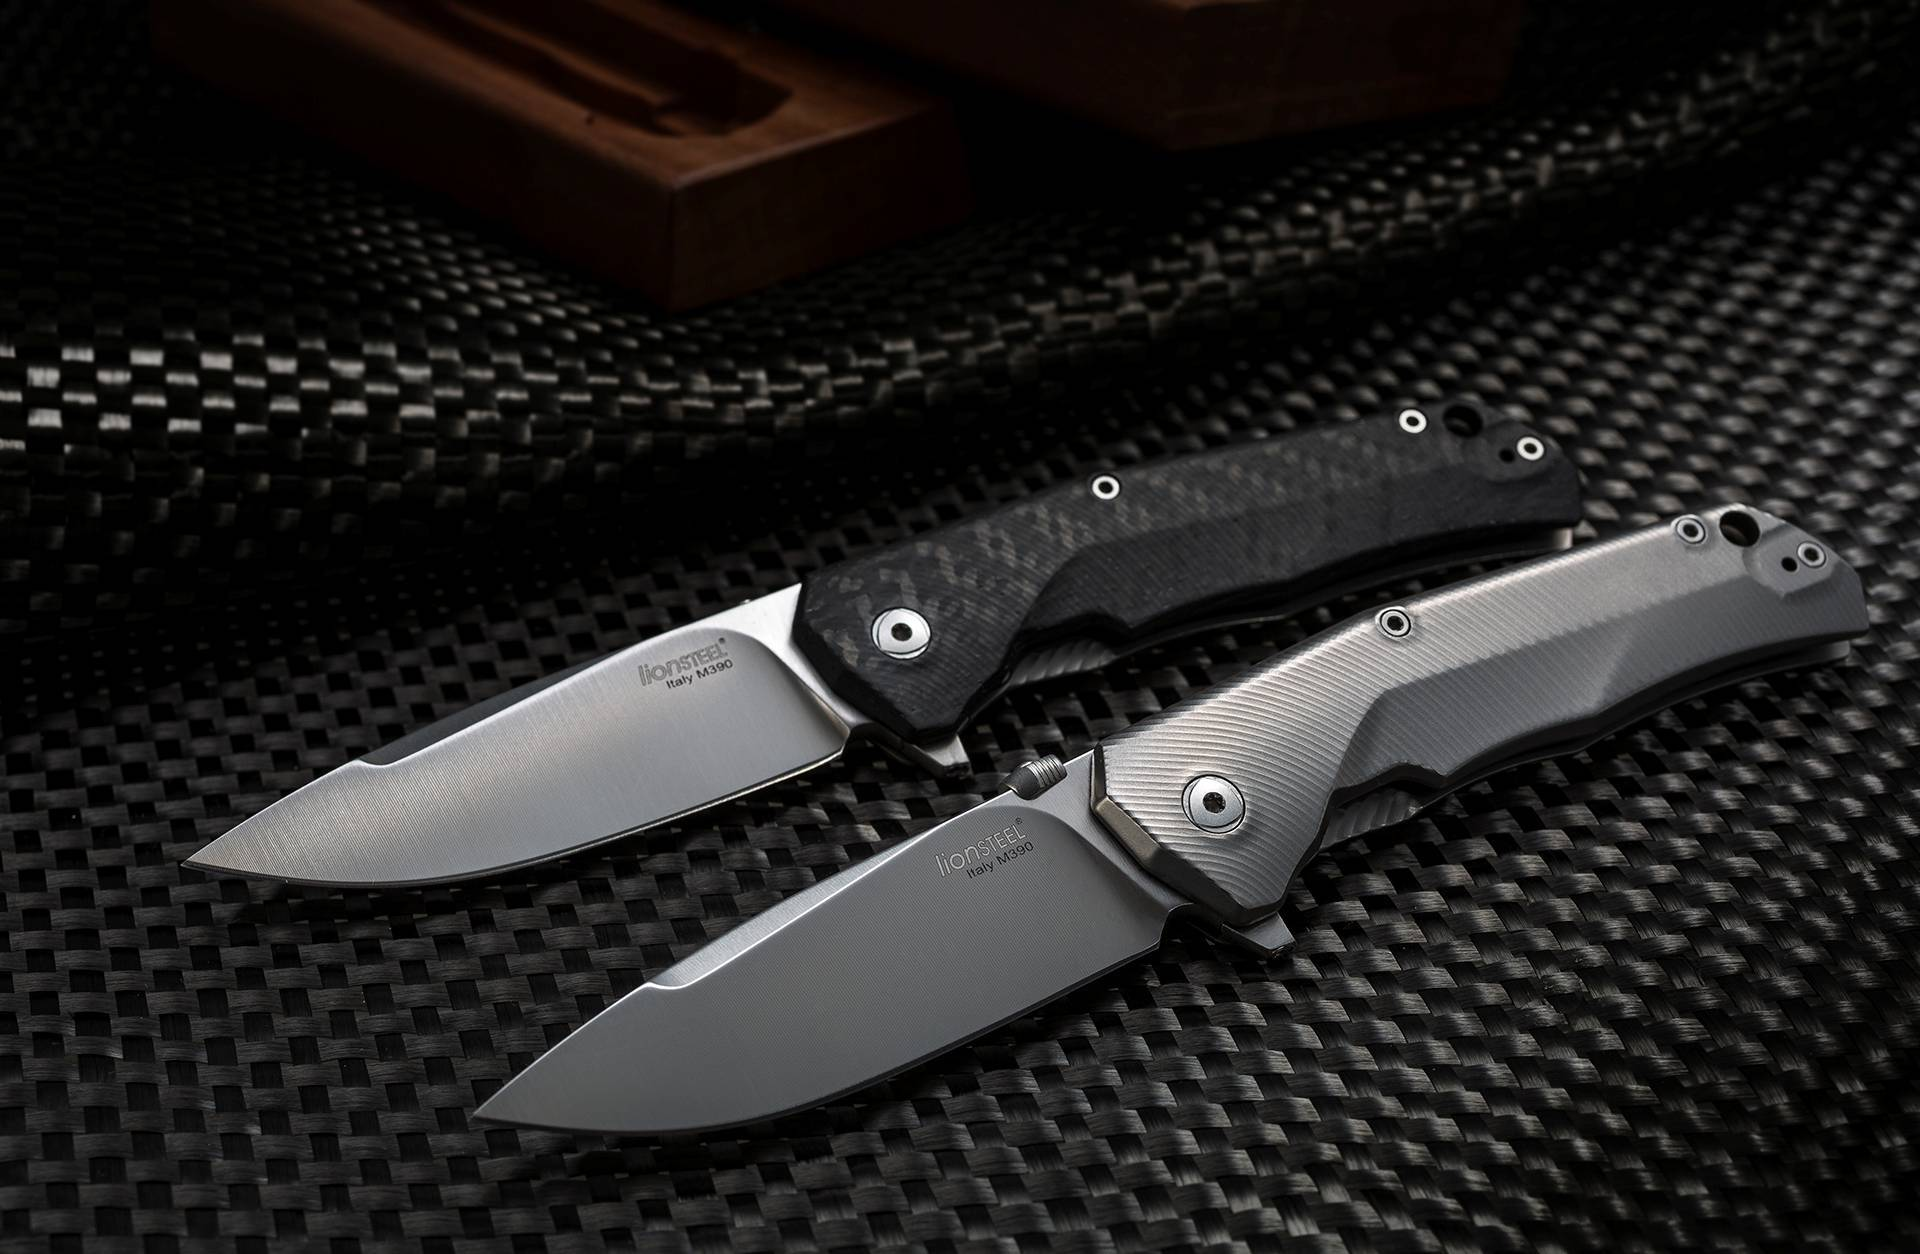 Фото 4 - Нож складной T.R.E. - Three Rapid Exchange (IKBS® Flipper), Carbon Fiber/Matte Titanium Handle от Lion Steel